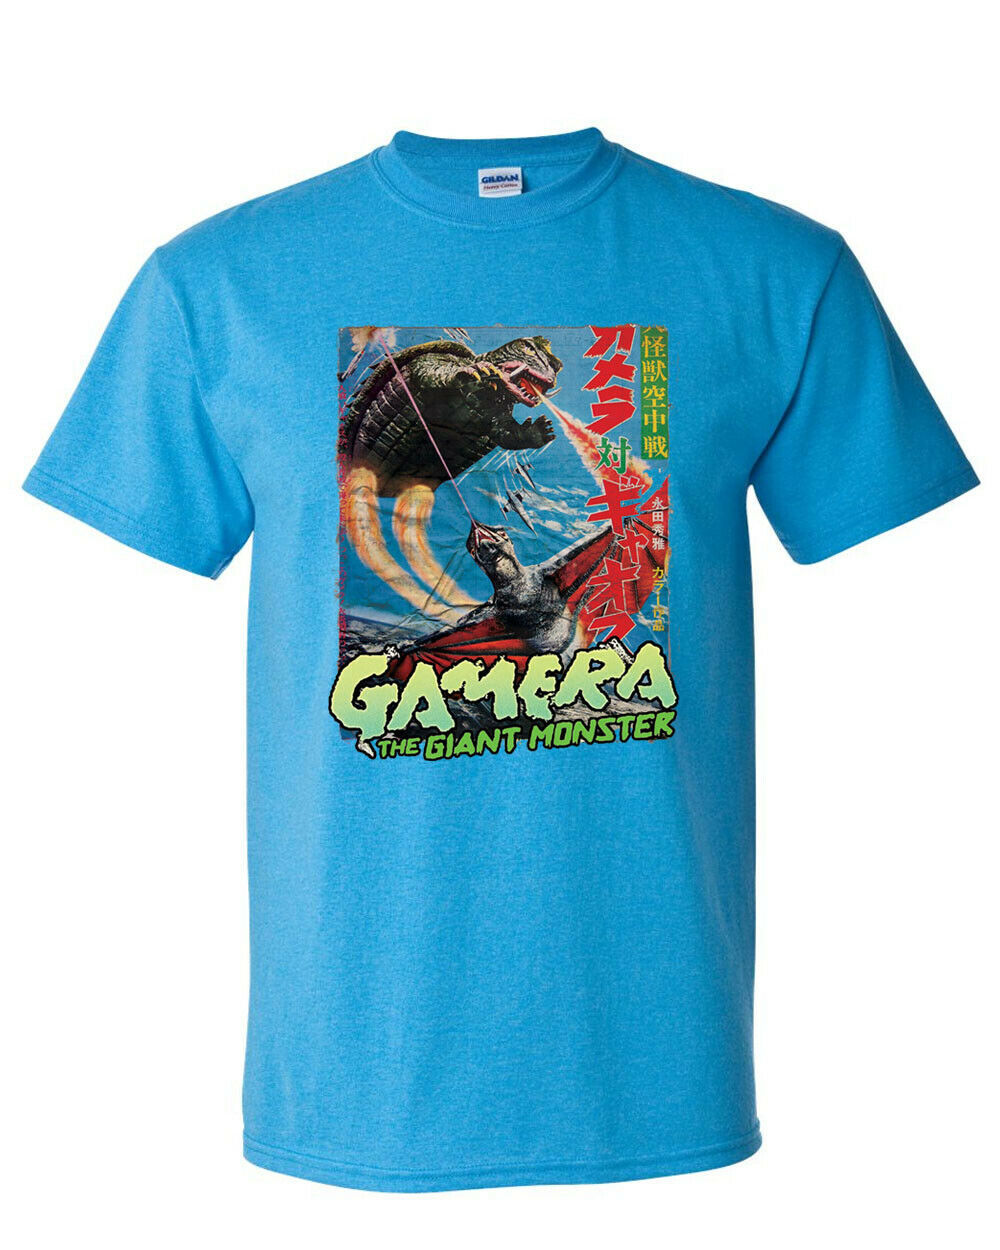 Gamera The Giant Monster T Shirt retro Japanese science fiction film graphic tee